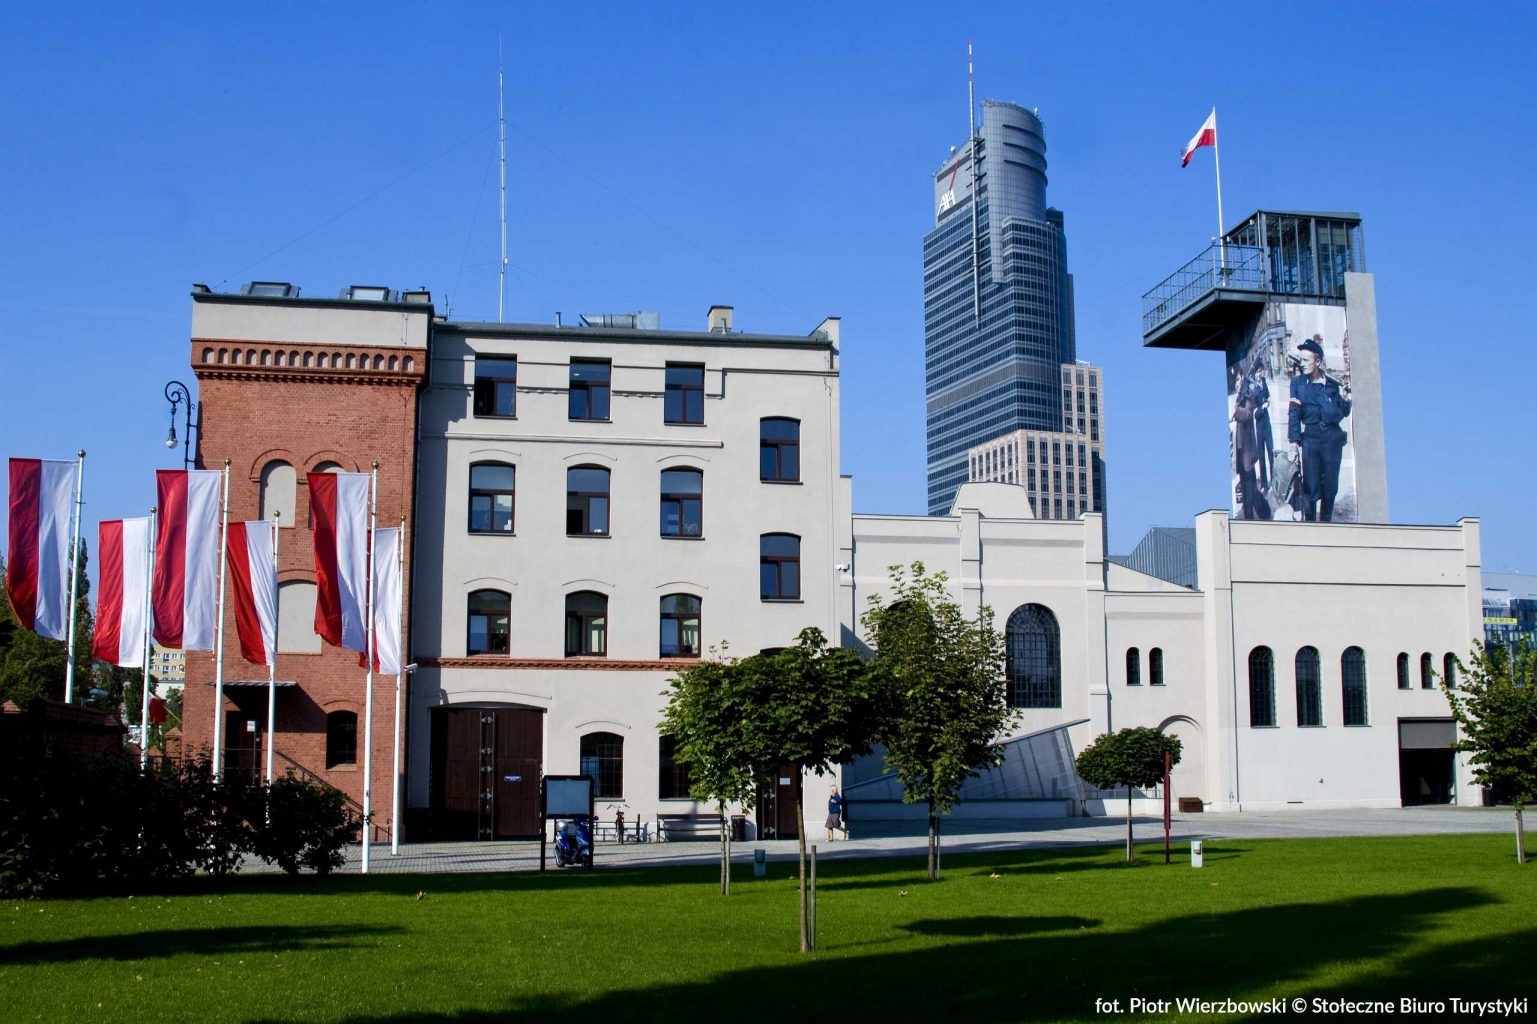 museum of warsaw uprising in warsaw